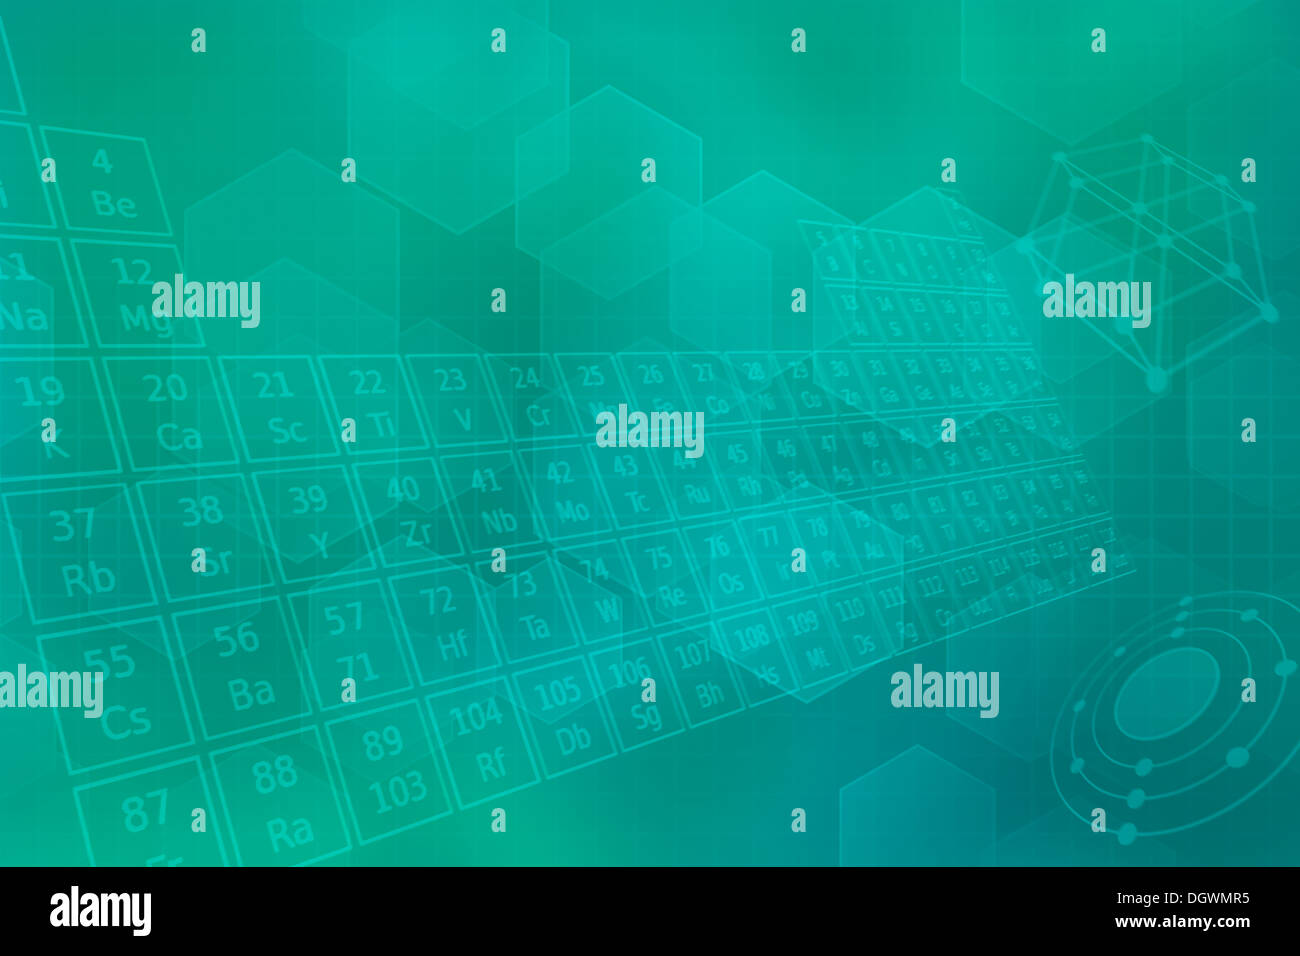 Turquoise futuristic background with the periodic table of elements turquoise futuristic background with the periodic table of elements urtaz Choice Image